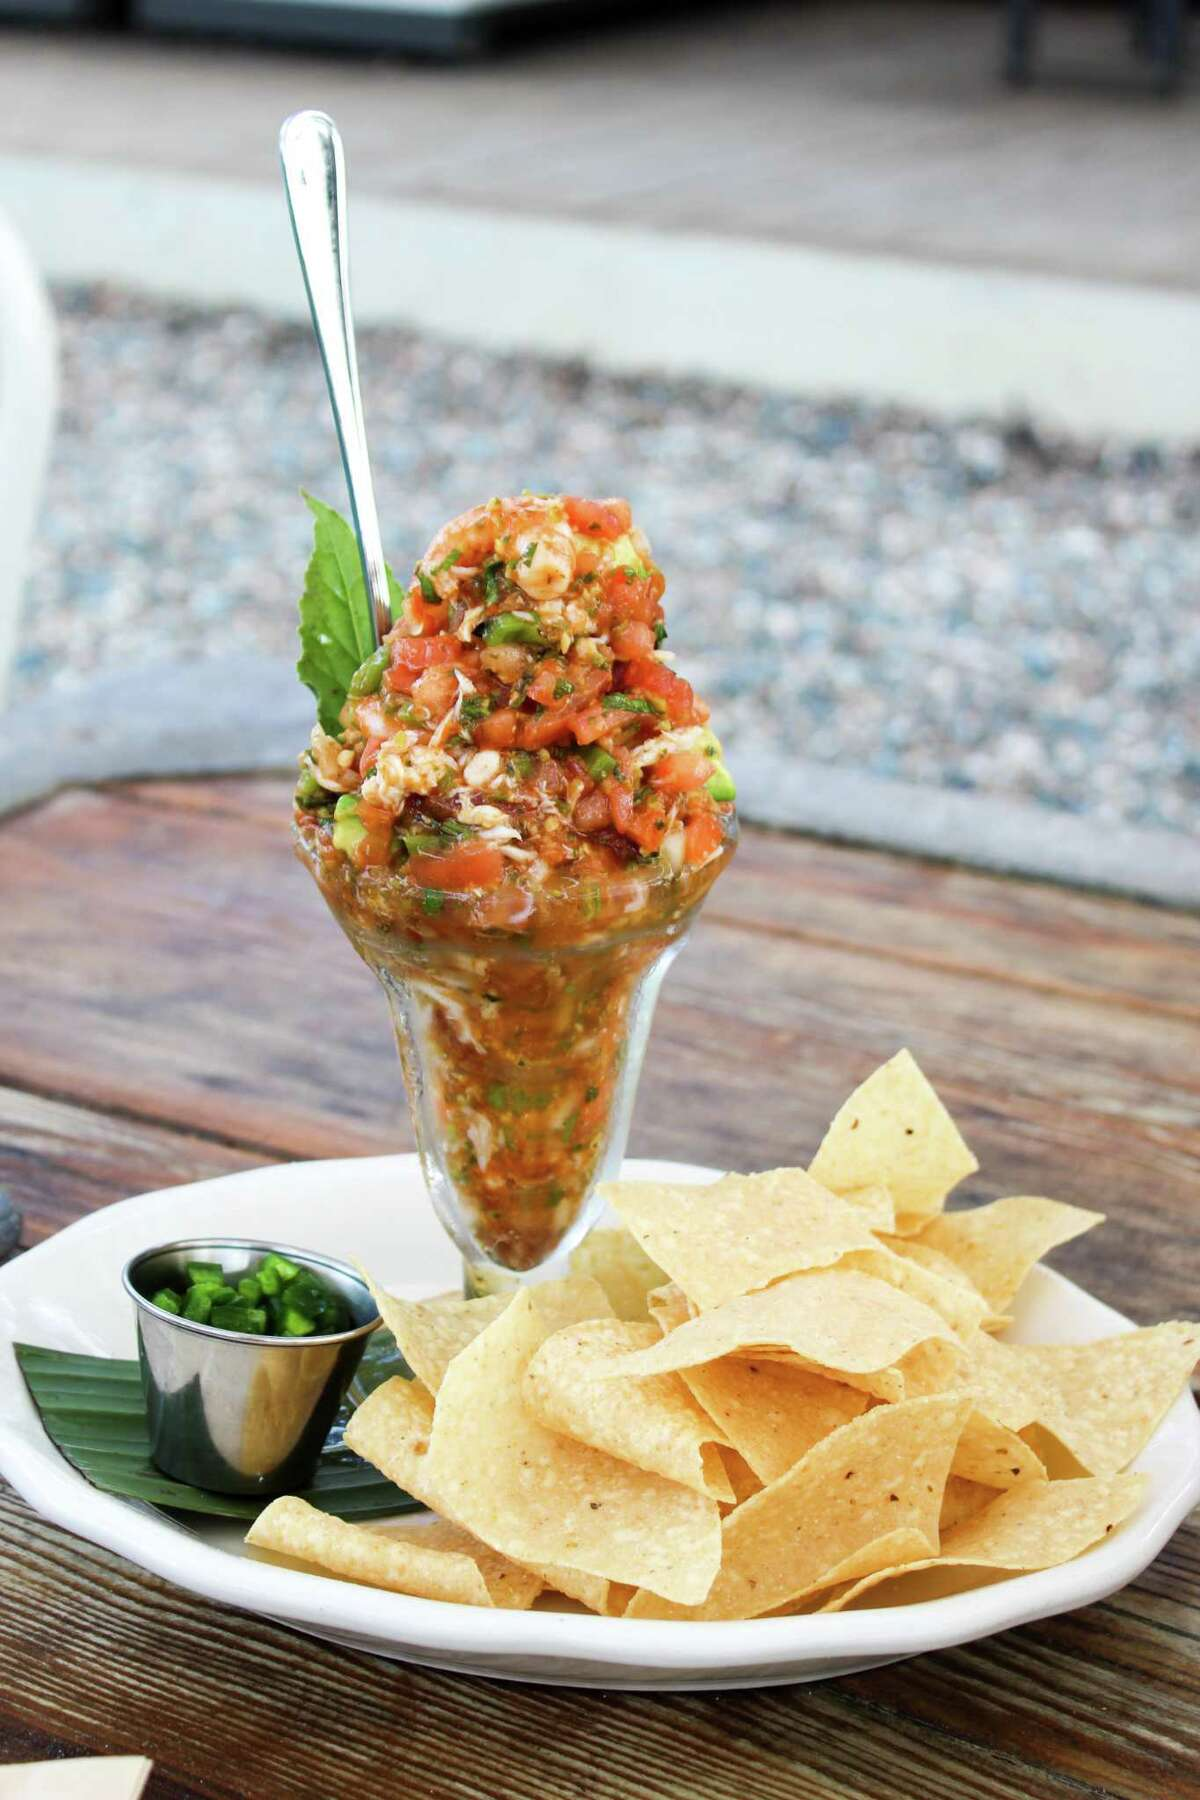 Campechana, or seafood cocktail, remains one of the most popular dishes at Goode Co. Seafood, where it was introduced to Houston in 1986.